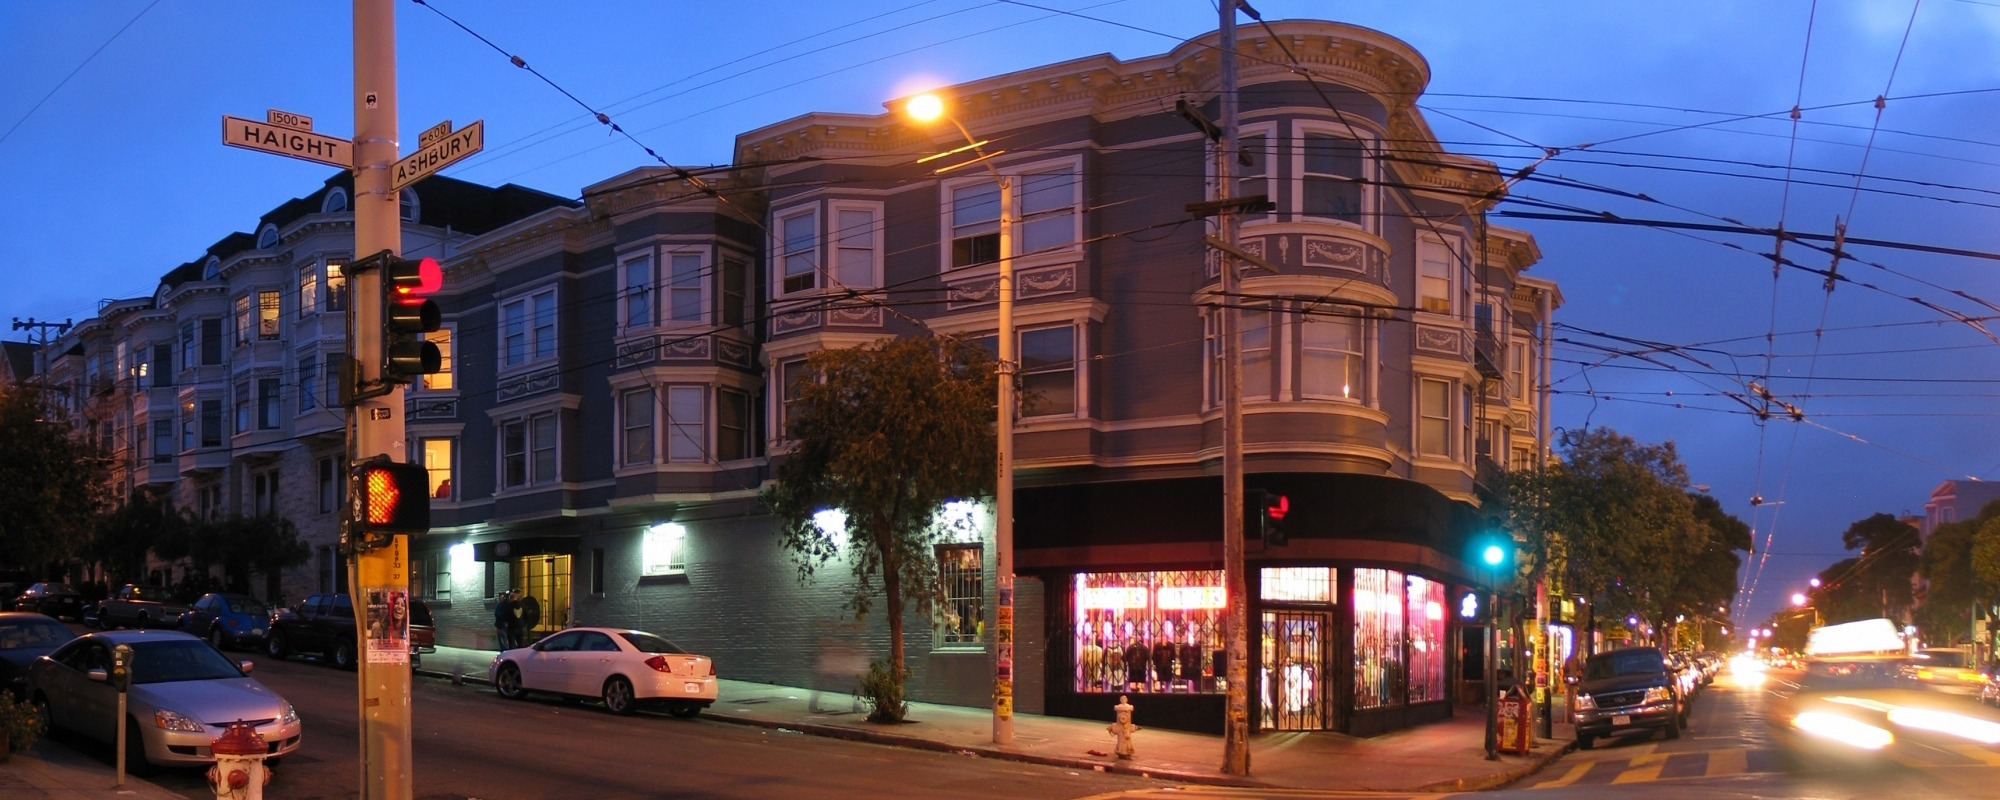 corner of Haight and Ashbury